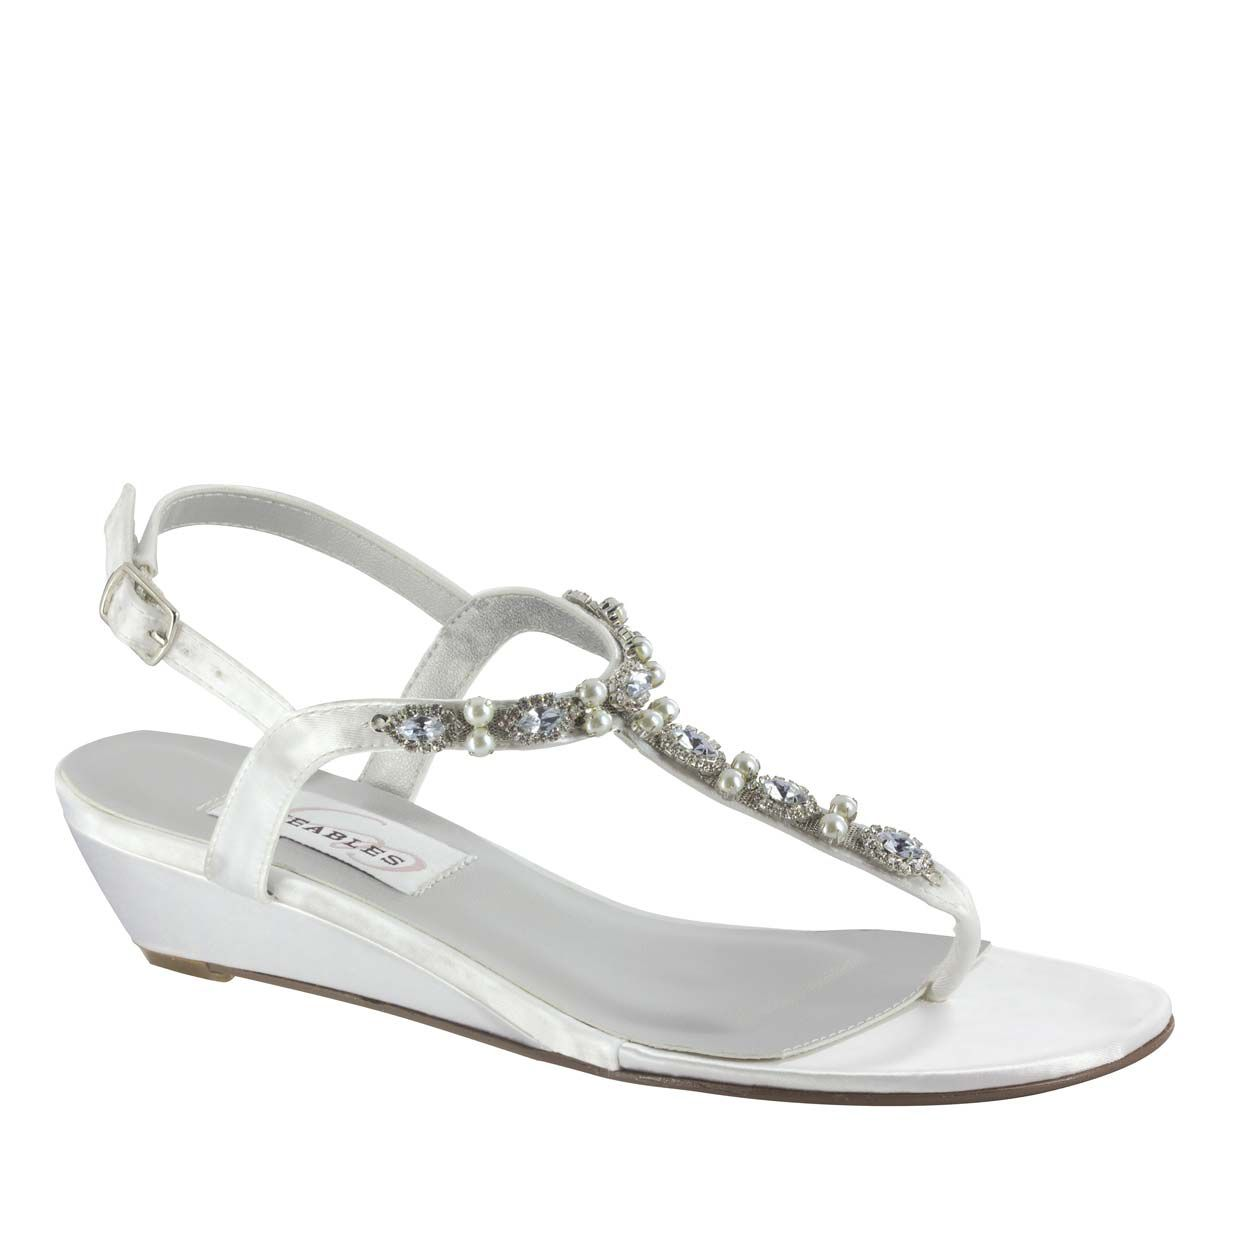 This sexy wedge shoe works great for outdoor gatherings or as a second pair of comfort shoes for your reception. #WeddingShoeInspirations